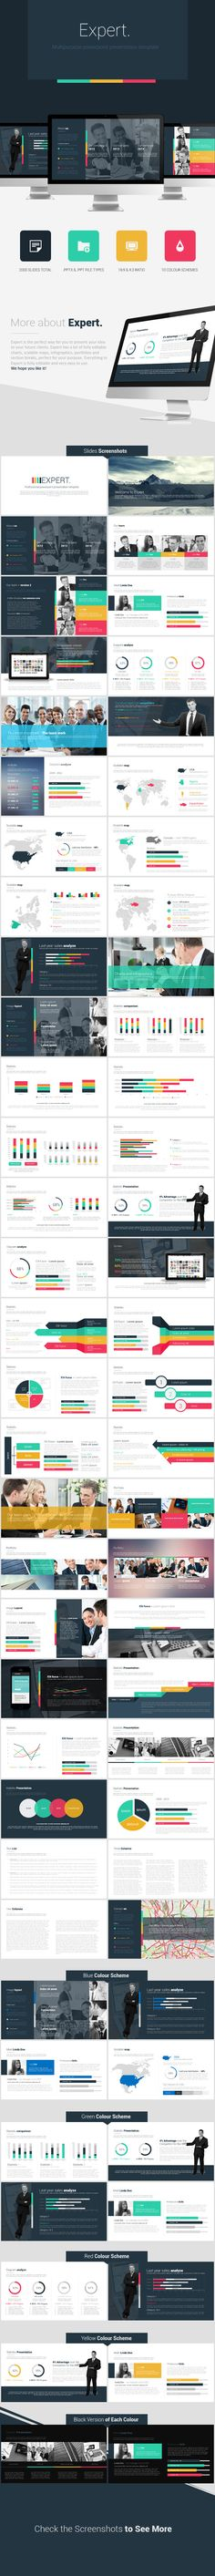 Expert Powerpoint Presentation Template - PowerPoint Templates Presentation Templates